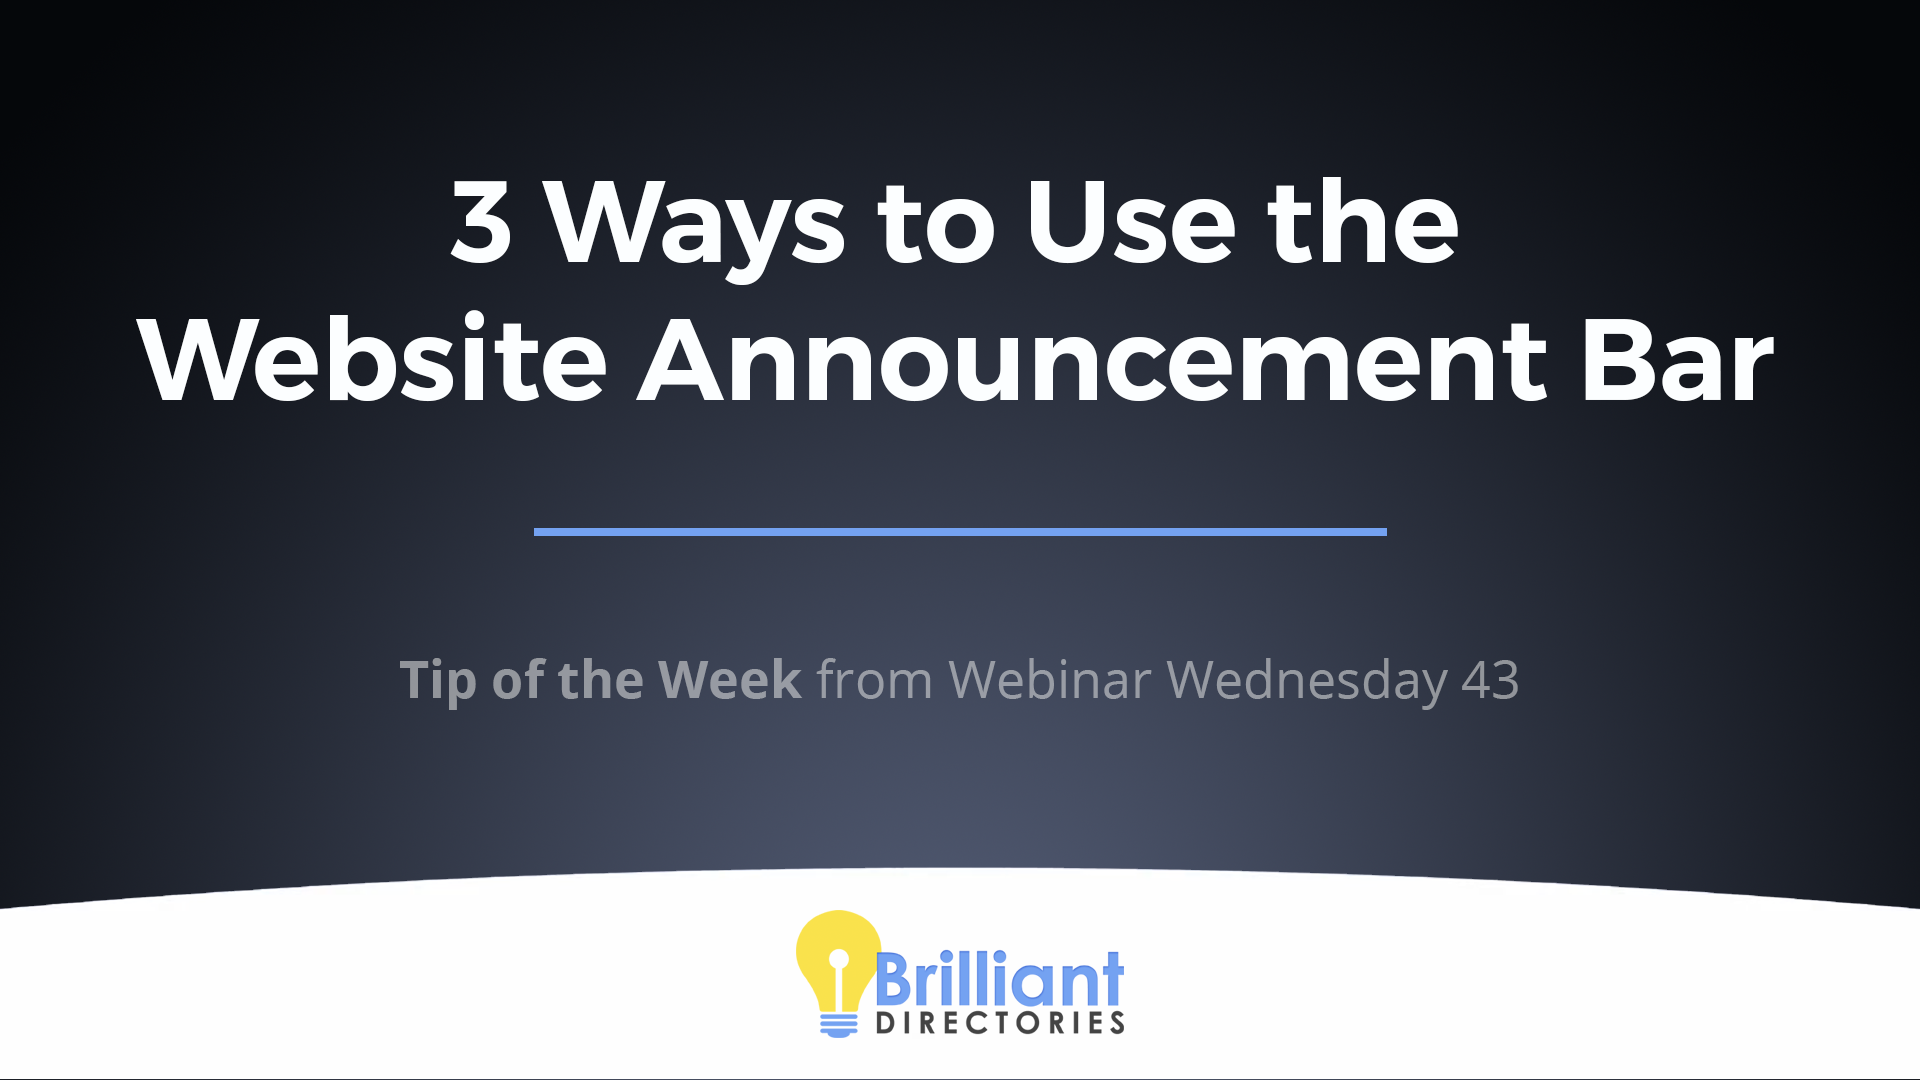 https://www.brilliantdirectories.com/blog/how-to-add-announcement-notification-messages-at-the-top-of-your-website-directory-website-tips